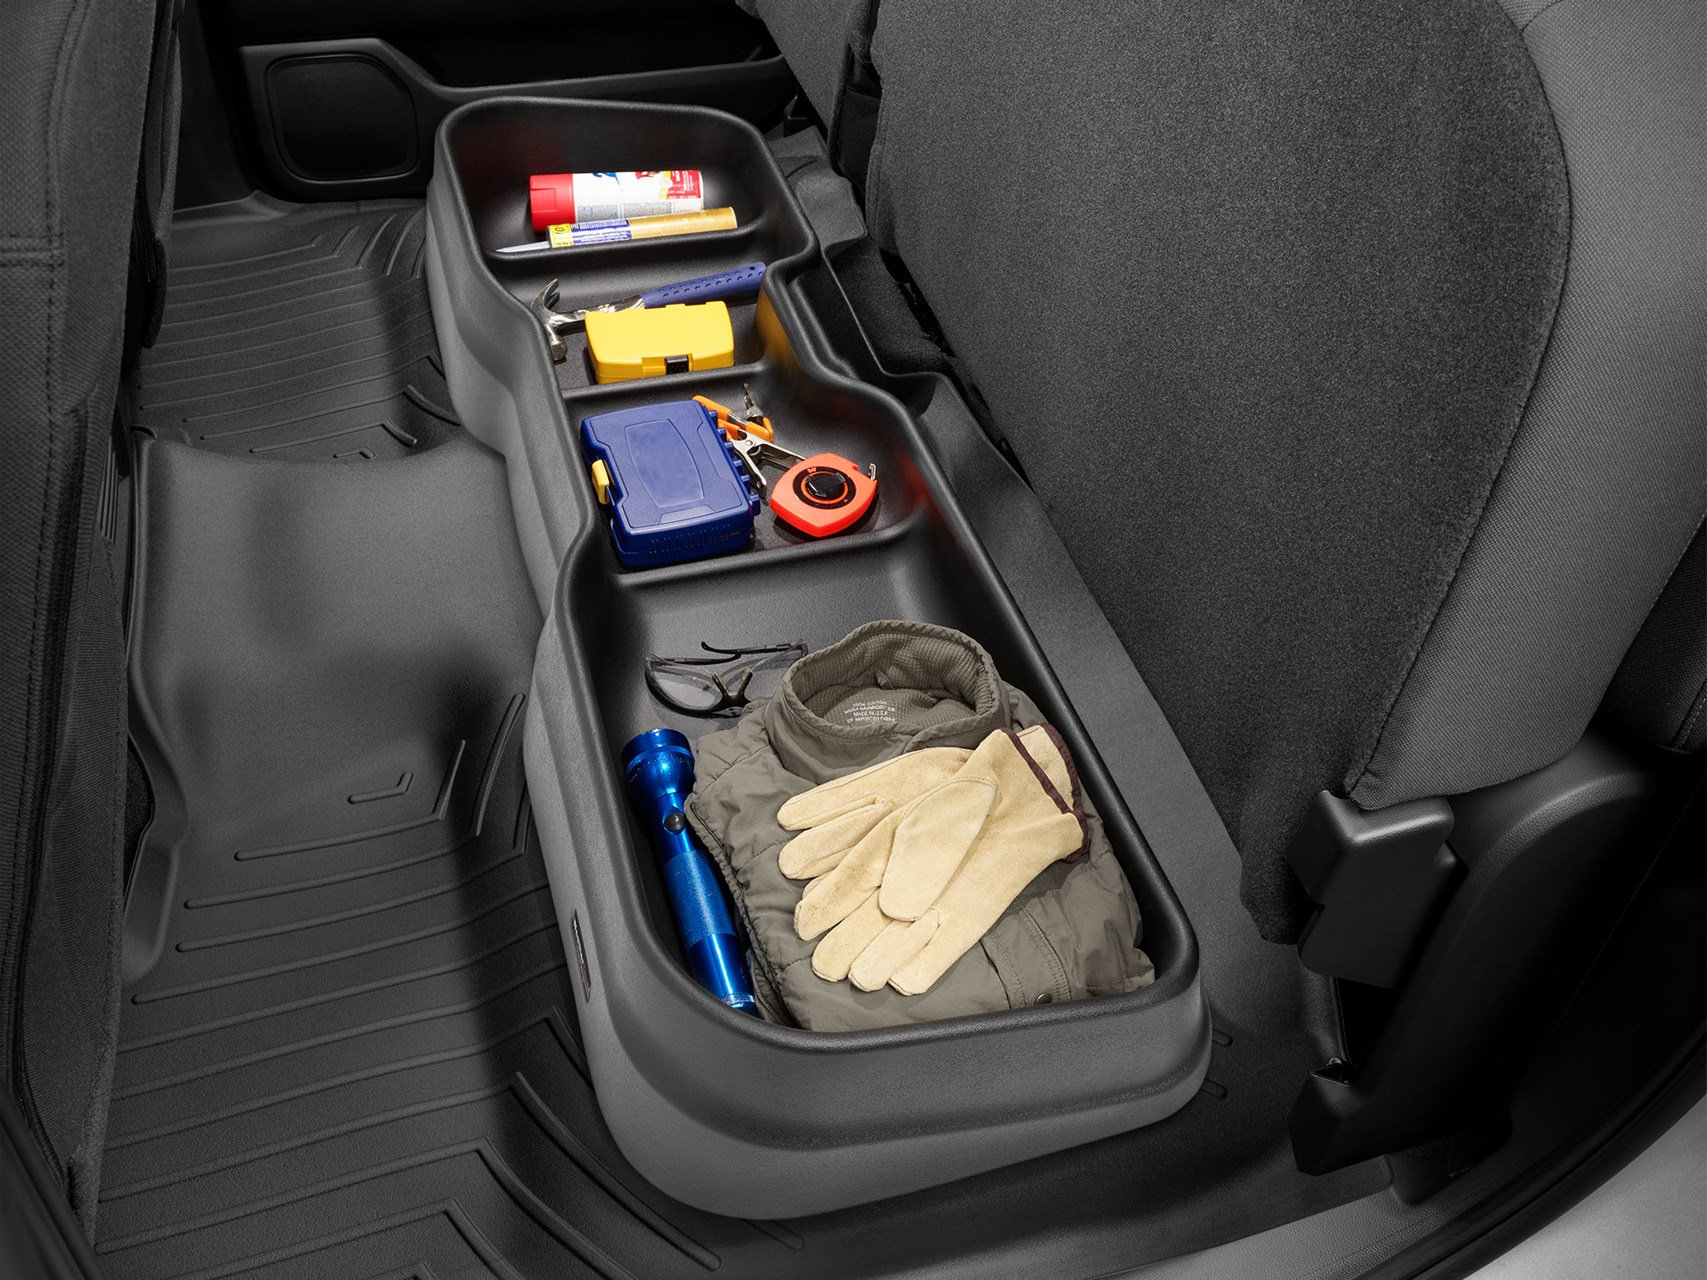 Incredible Toyota 2019 Tacoma Under Seat Storage System Frankydiablos Diy Chair Ideas Frankydiabloscom